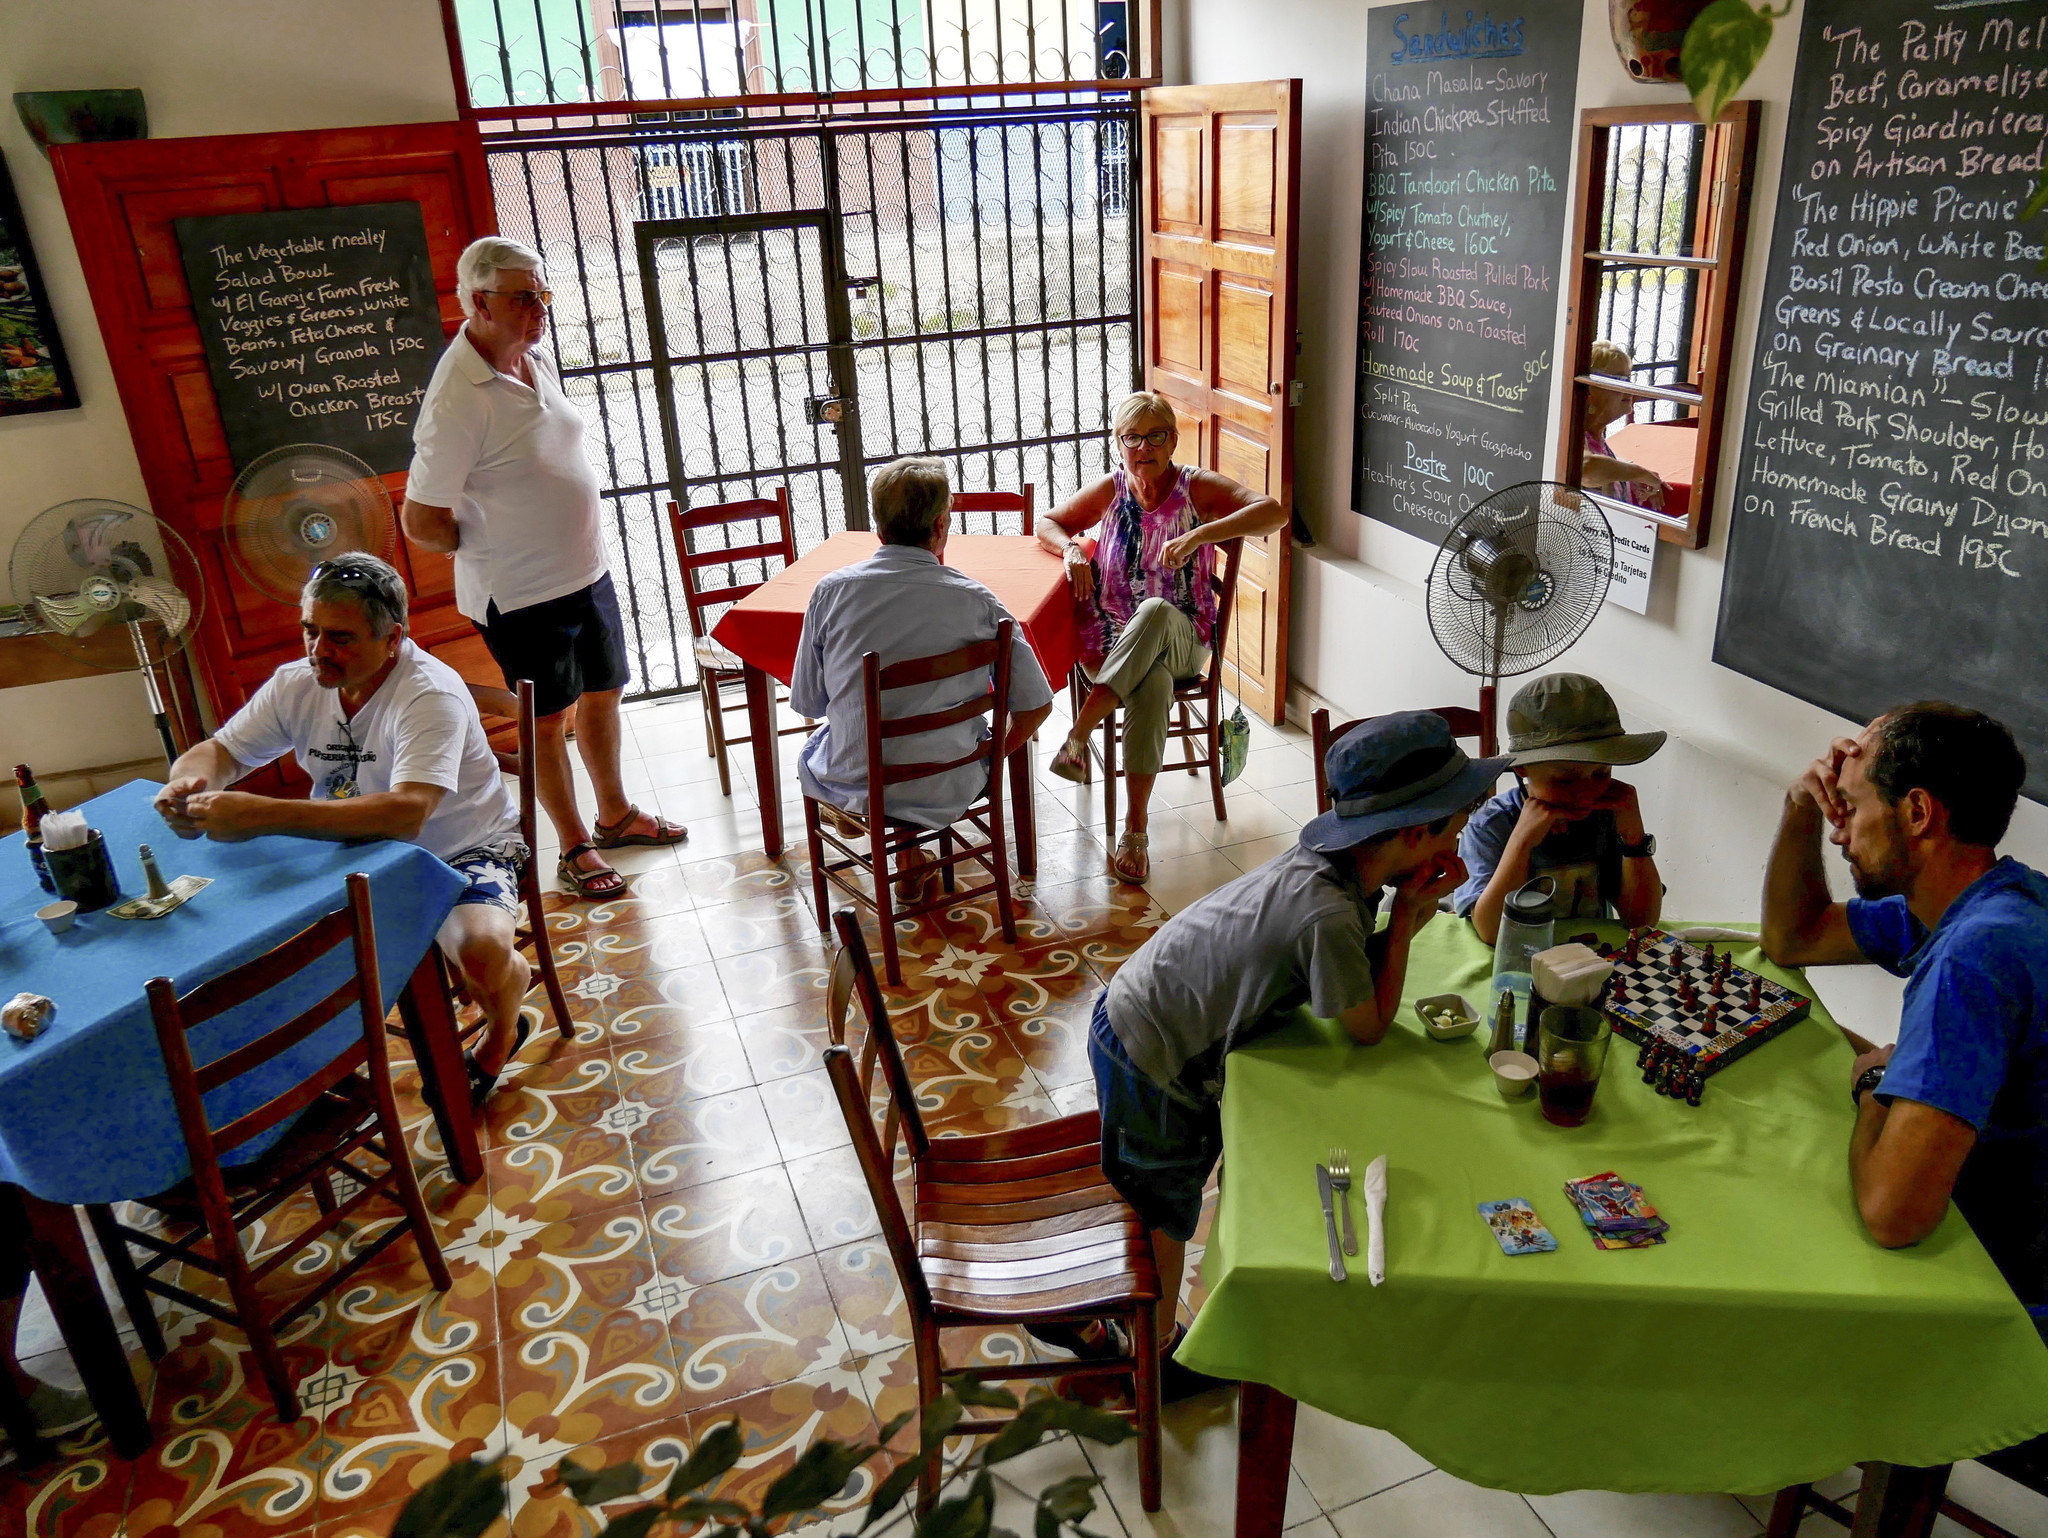 Tim Waring plays chess with Liam and Reid while the family waits for lunch at Restaurante El Garaje in Granada.